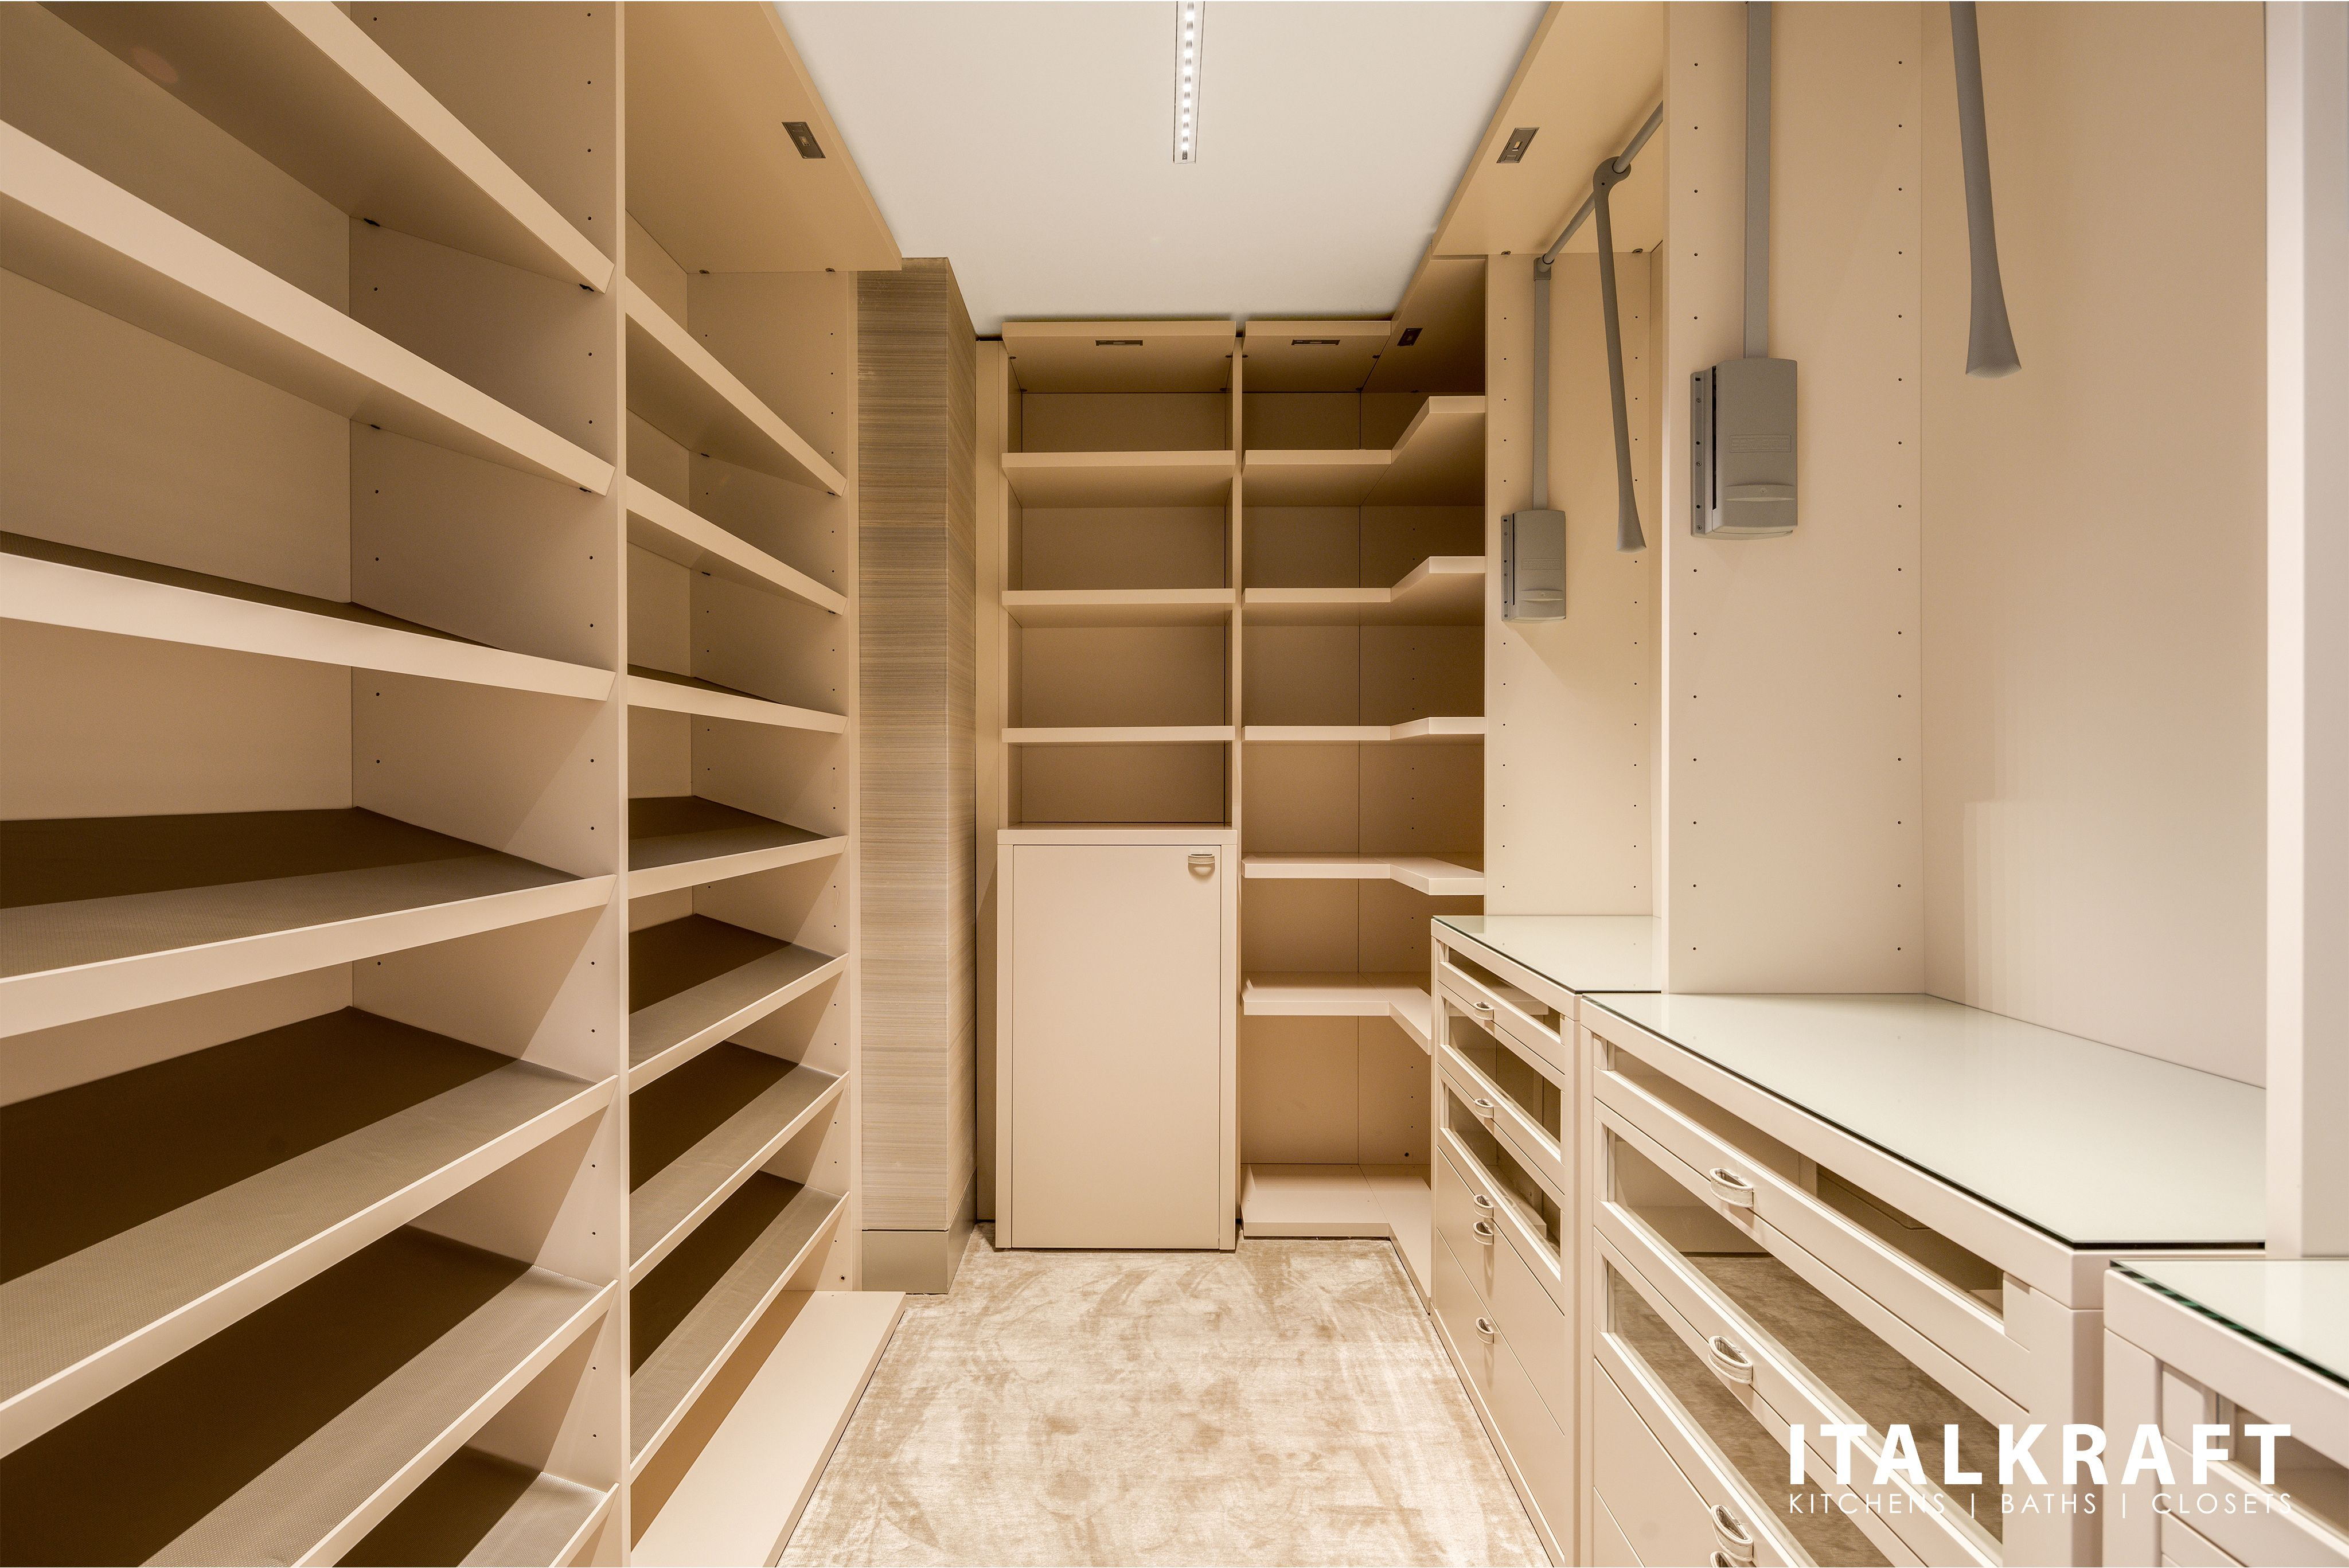 Awesome Custom Luxury Closet Design By Italkraft Luxury Design Download Free Architecture Designs Sospemadebymaigaardcom